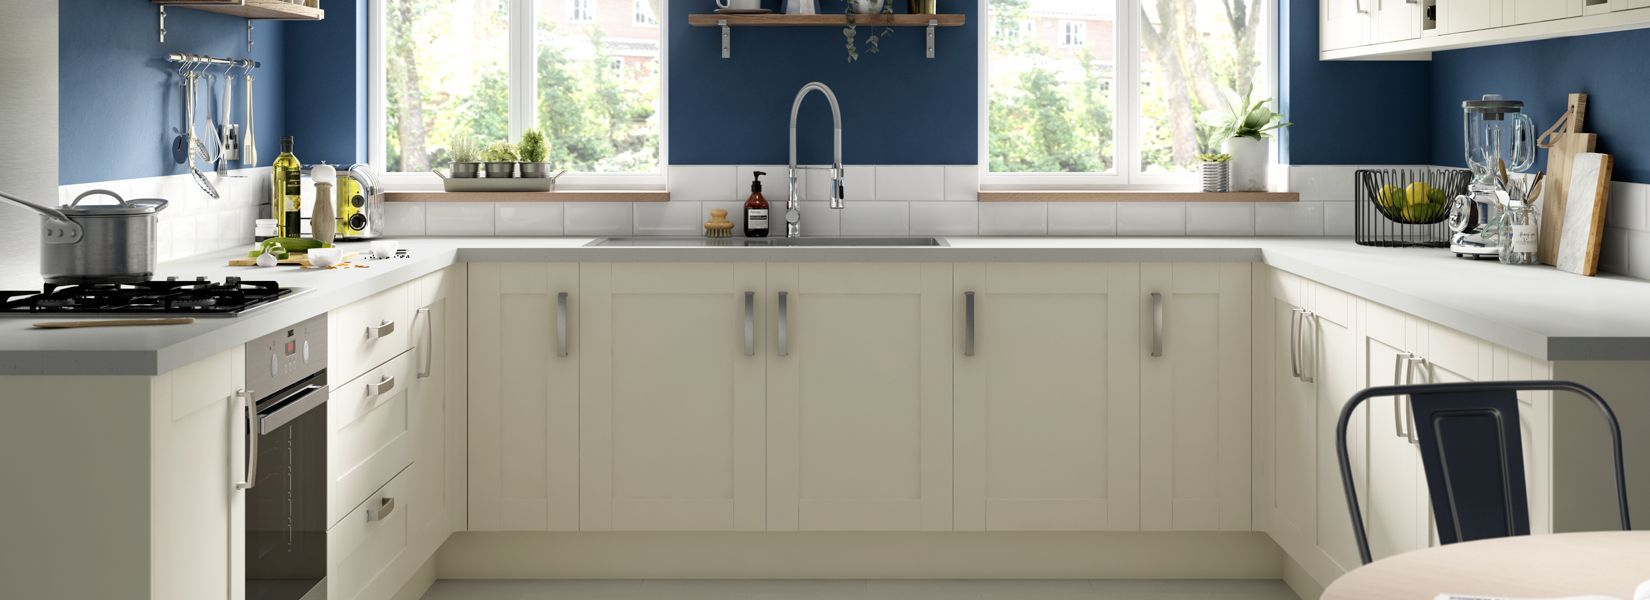 Ohio Classic & Traditional Kitchens Wickes.co.uk